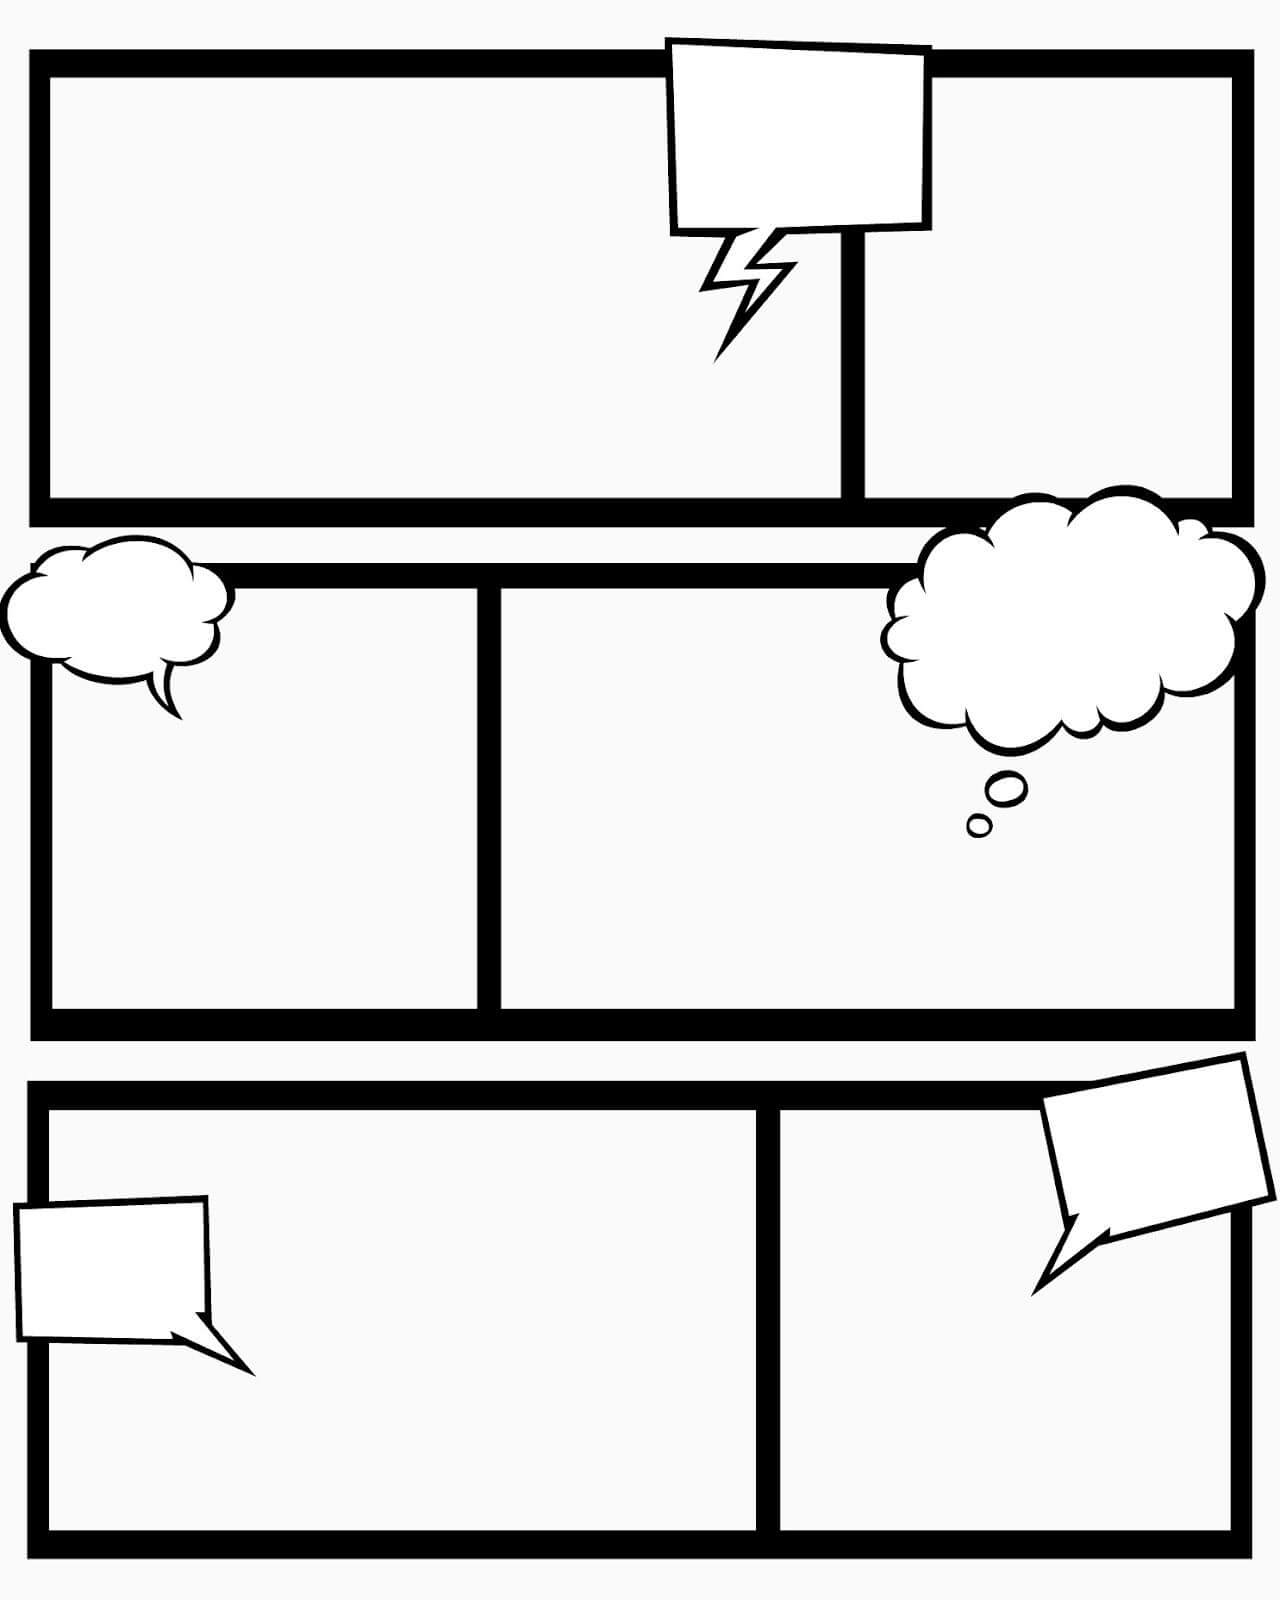 Sweet Hot Mess: Free Printable Comic Book Templates - And With Regard To Printable Blank Comic Strip Template For Kids